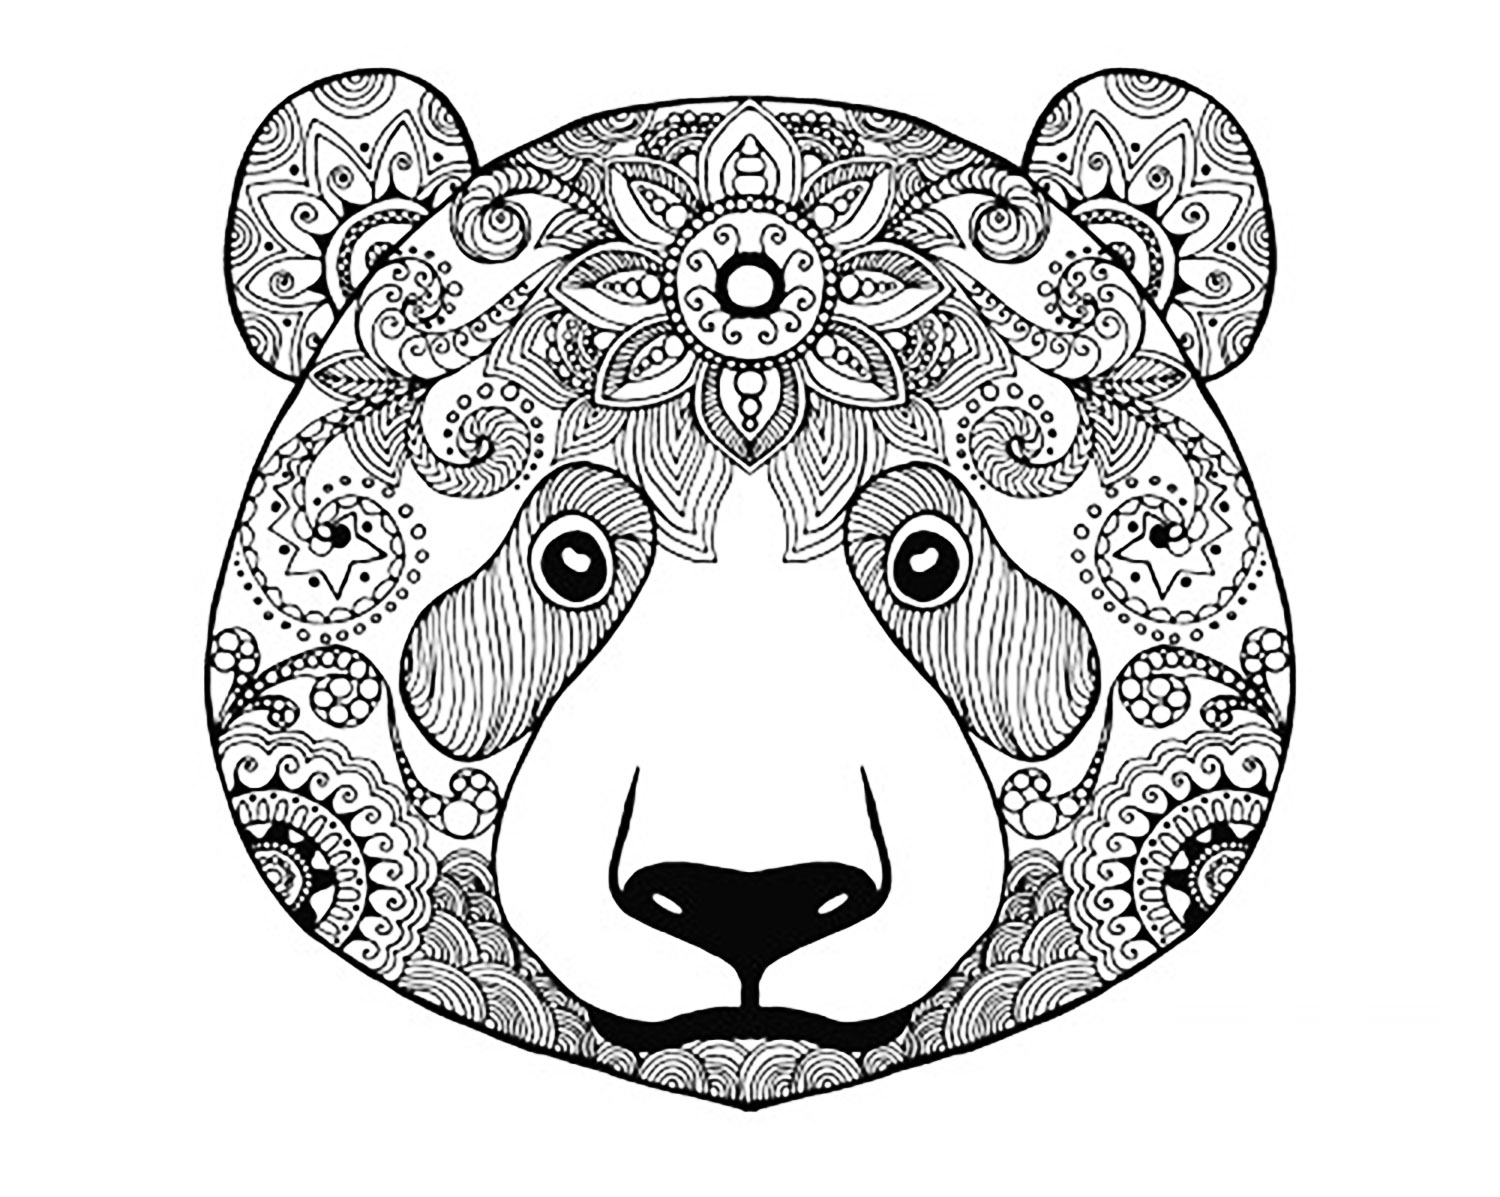 coloring templates animals 30 free coloring pages a geometric animal coloring coloring animals templates